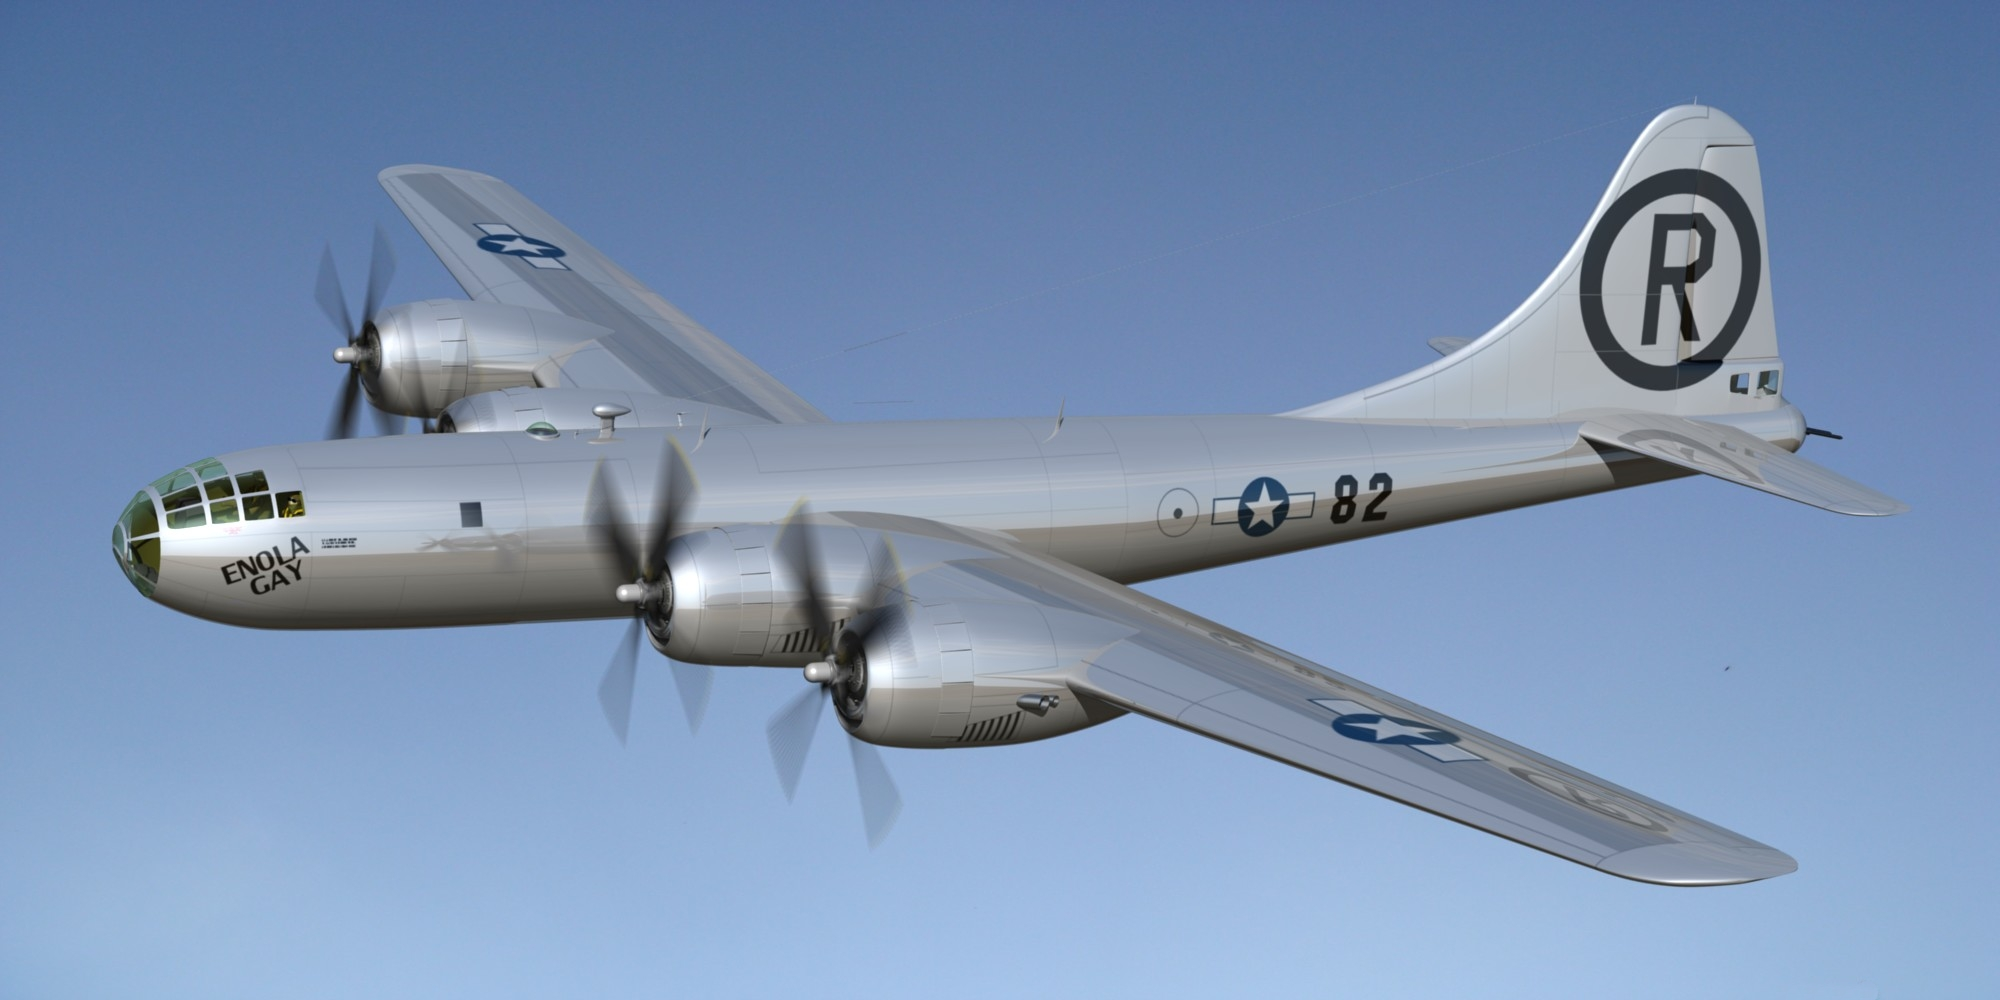 How To Draw Plane B29 Enola Gay Superfortress By Emigepa On Deviantart